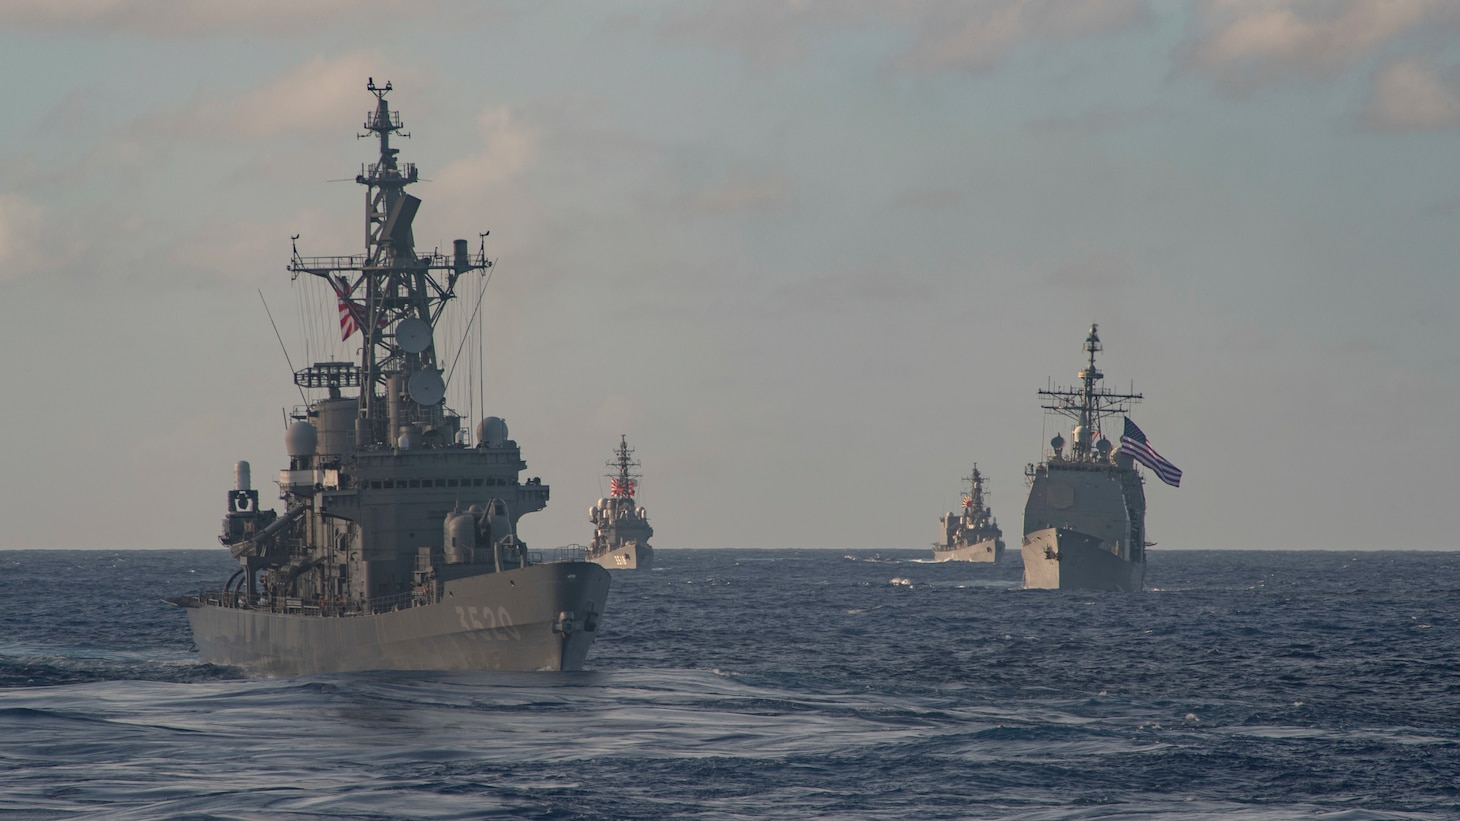 PACIFIC OCEAN (Feb. 28, 2021) – The Japan Maritime Self-Defense Force (JMSDF) Hatakaze-class destroyer JDS Hatakaze (TV 3520), front, Ticonderoga-class guided-missile cruiser USS Bunker Hill (CG 52), far right, JMSDF Hatsuyuki-class destroyer JDS Setoyuki (TV 3518), left, and JMSDF Asagiri-class destroyer JDS Yugiri (DD 153) transit the Pacific Ocean Feb. 28, 2021. Bunker Hill, part of the Theodore Roosevelt Carrier Strike Group, is on a scheduled deployment to the U.S. 7th Fleet area of operations. As the U.S. Navy's largest forward-deployed fleet, 7th Fleet routinely operates and interacts with 35 maritime nations while conducting missions to preserve and protect a free and open Indo-Pacific Region. (U.S. Navy photo by Mass Communication Specialist 3rd Class Erik Melgar